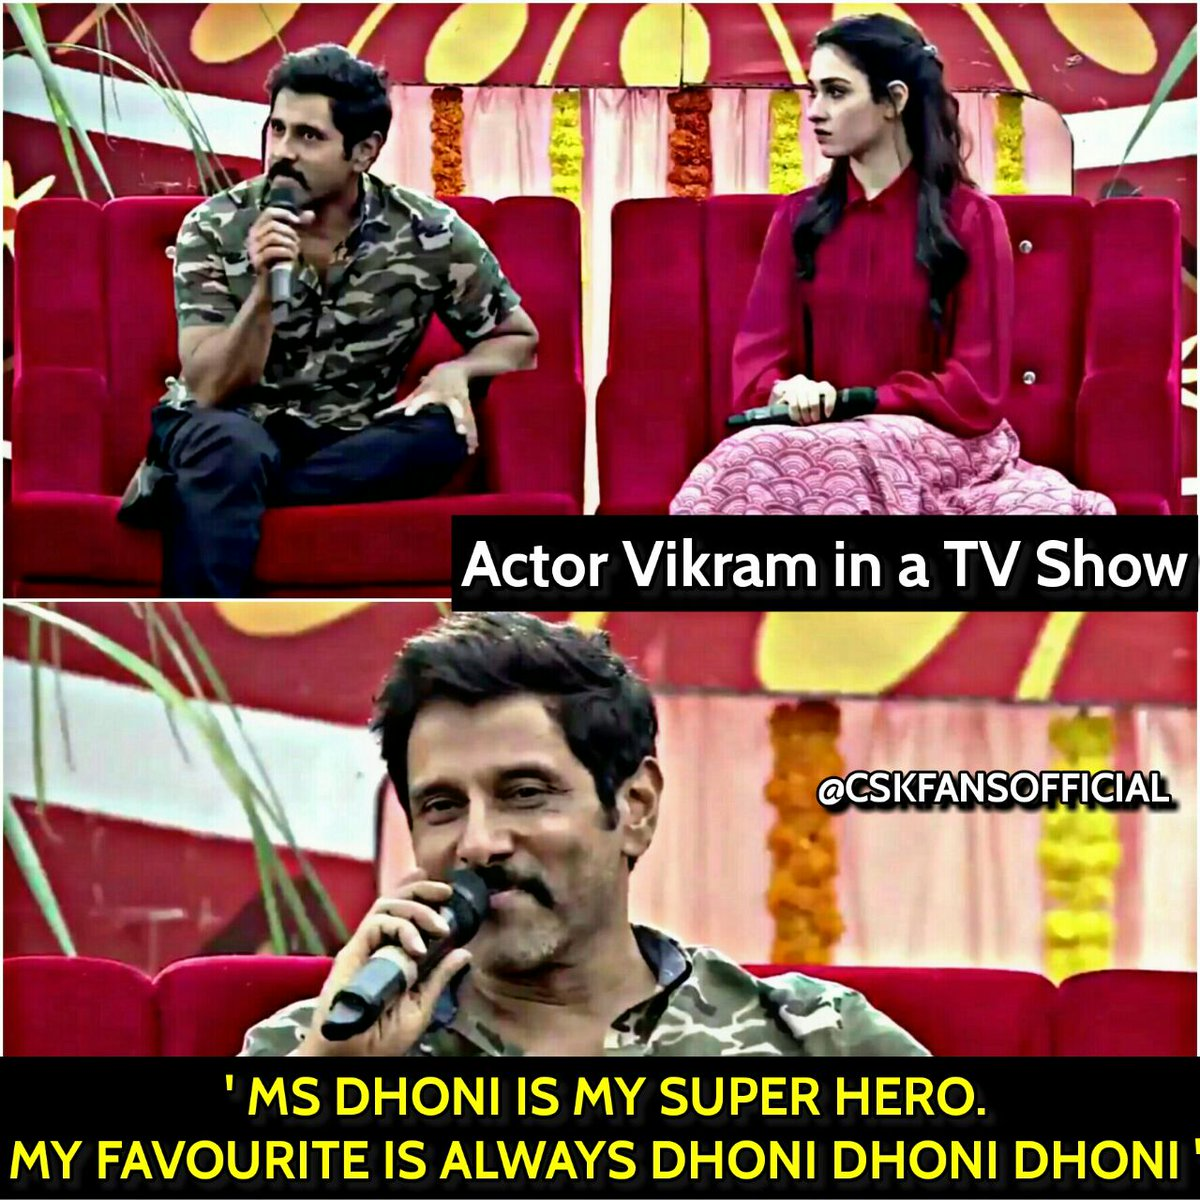 RT @CSKFansOfficial: Actor Vikram about Thala Dhoni in a TV show!💖😎 #WhistlePodu #SummerIsComing #CSK https://t.co/6r5S5GgAme